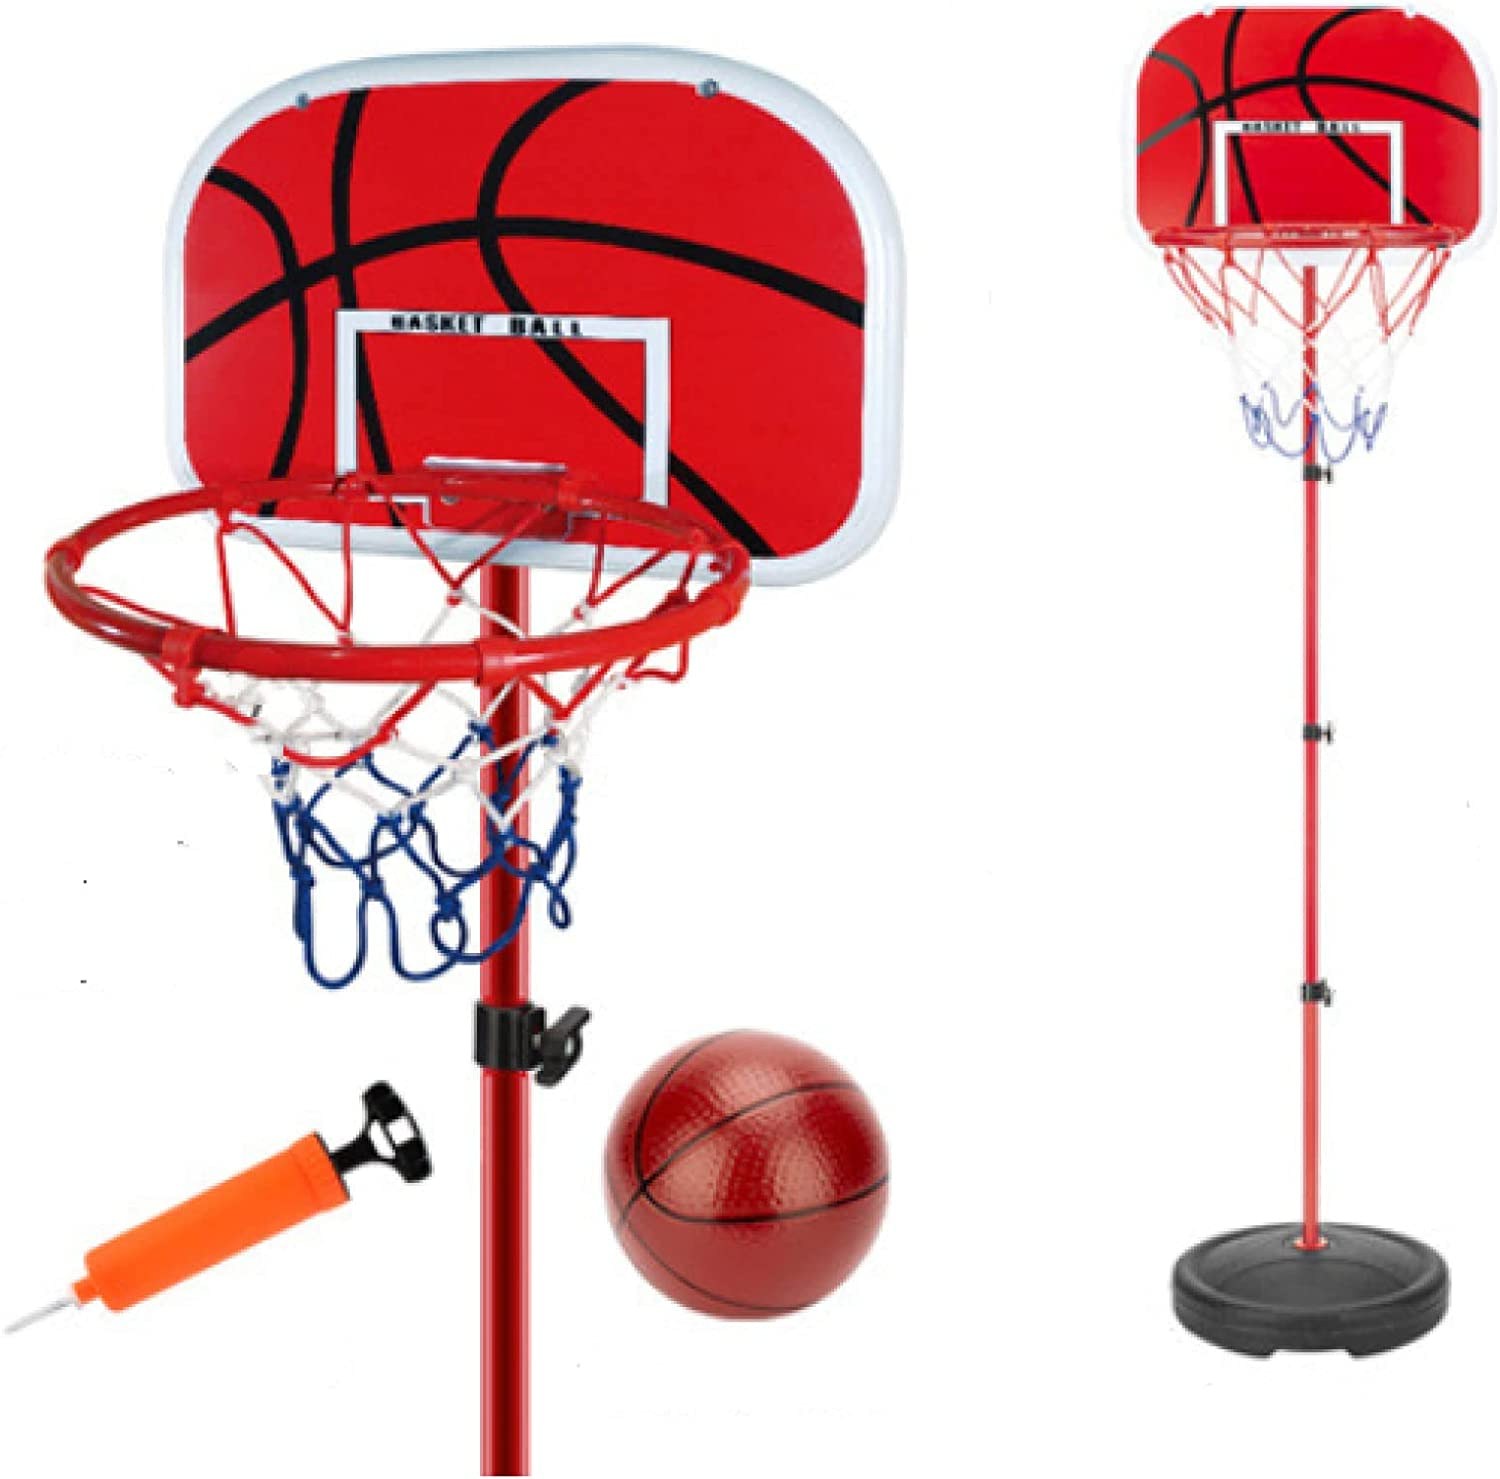 Msheng Children's Portable Basketball Hoop Indoor Clearance SALE Kansas City Mall Limited time Plas Household